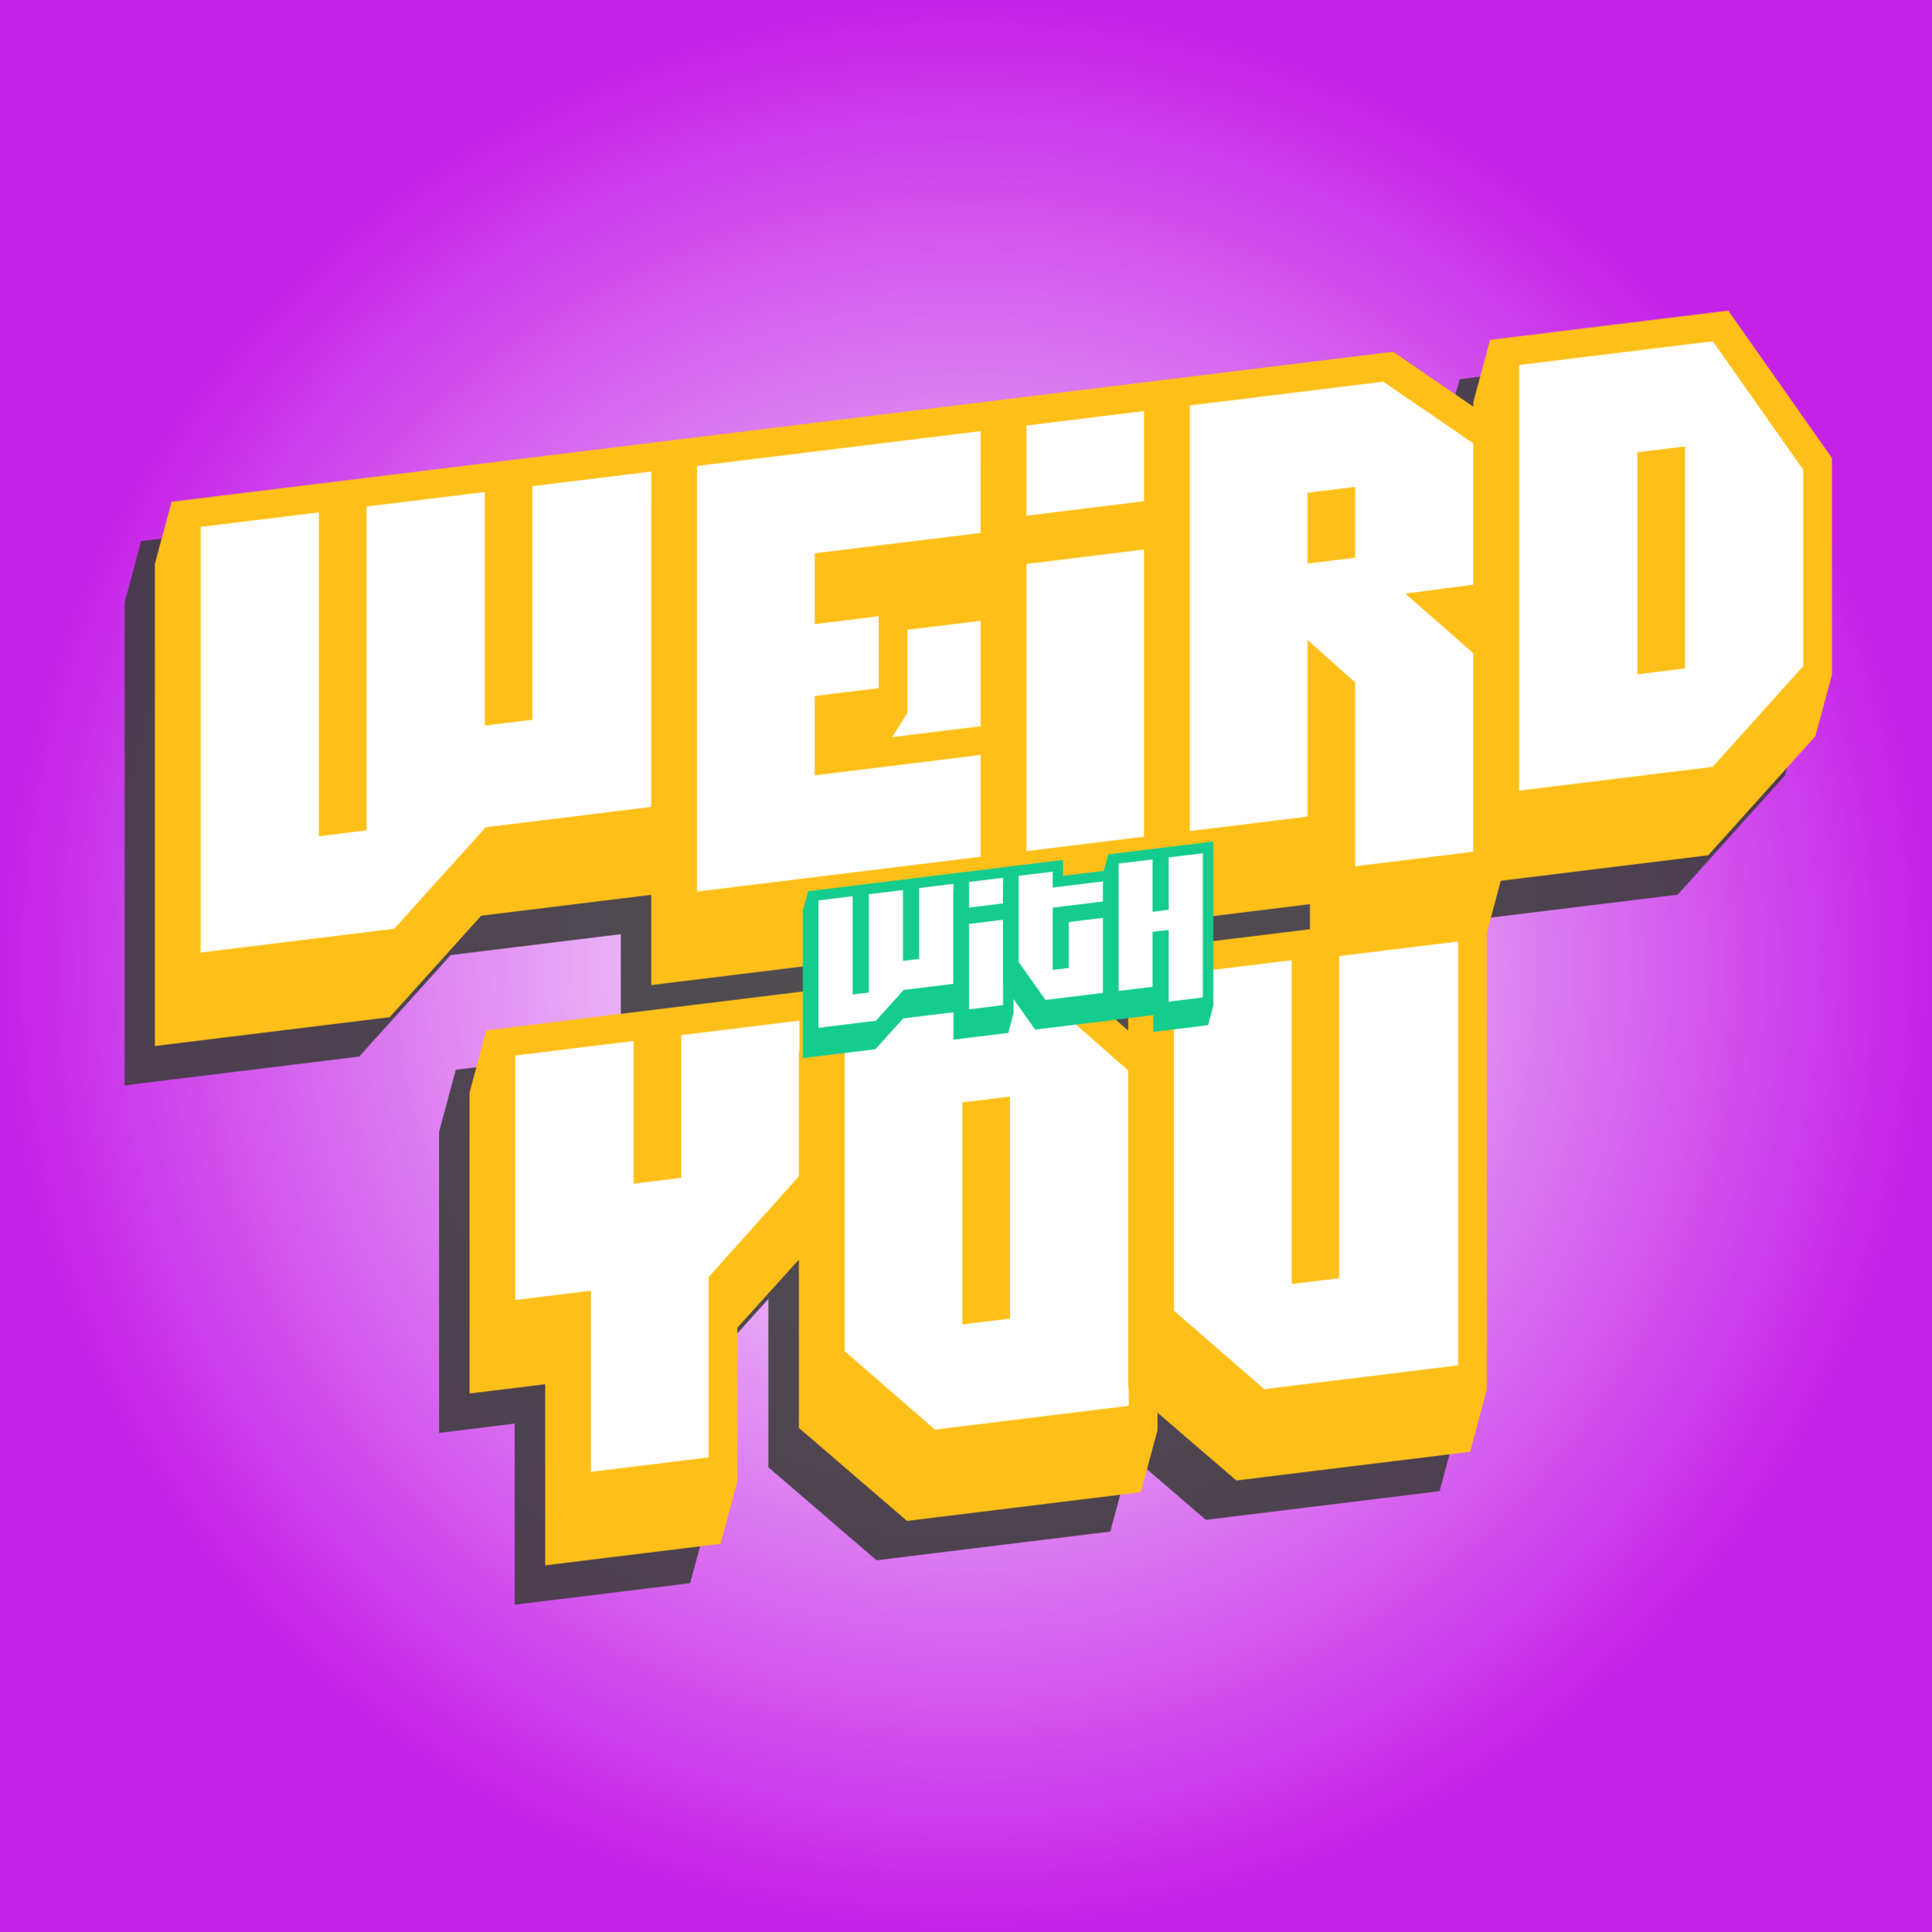 """- Weird With You is a comedy podcast that trickles through your unsuspecting ears like a slow and viscus river of maple syrup. Straight outa the frigid Canadian wilderness of Toronto, join Justine and Santiago as they tickle your funny bone, and gently caress your humorous with a slew of off the wall topics, silly tangents, and ridiculous segments. Weird With You isn't afraid to ask the tough questions you never knew you needed answers to: """"Would The Lord of the Rings have been shorter if Frodo had been a drone?"""" """"What are the funeral rites of the common Christmas elf?"""" and """"Are pugs a myth?""""Join us every Wednesday for your weekly dose of weird, conversational quirk.Come for the podcast, stay for our totally legit, not at all made up sponsors"""